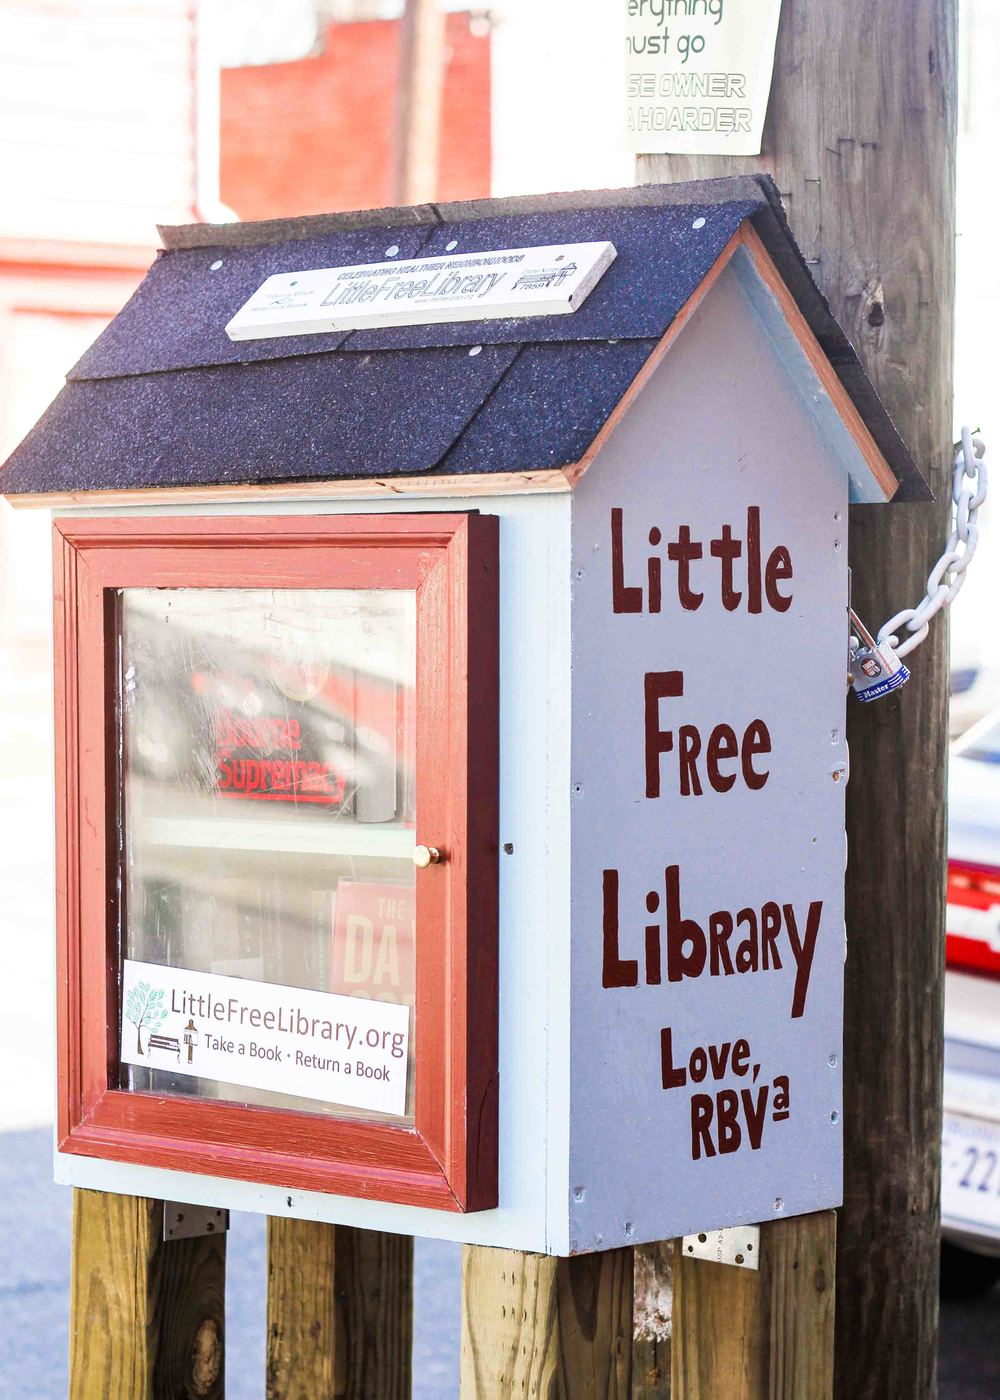 It's nice to see these Little Free Libraries popping up around the city.